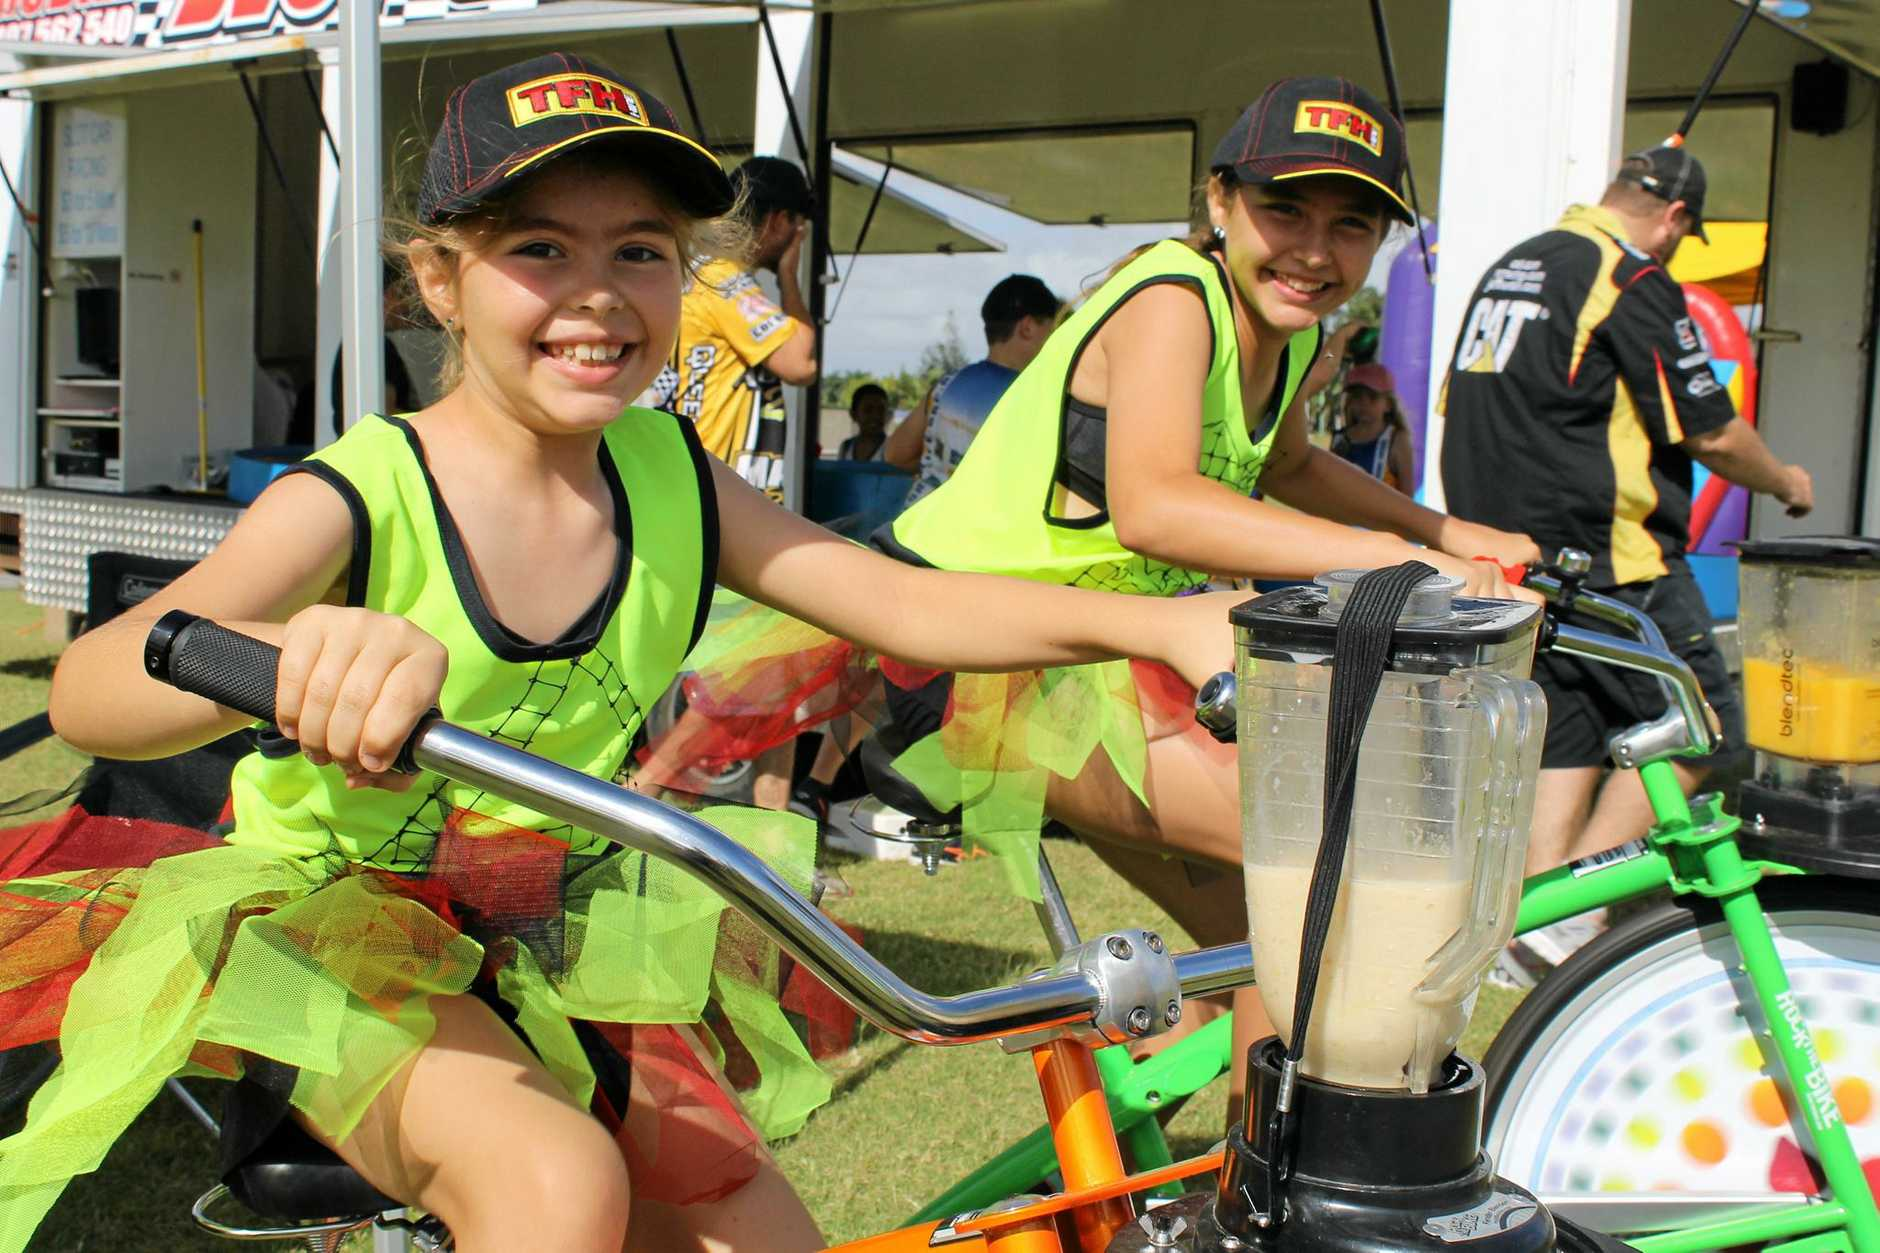 Sisters Ashley White and Emma White manning the ActiveBlendz blender bikes at Run for MI Life.